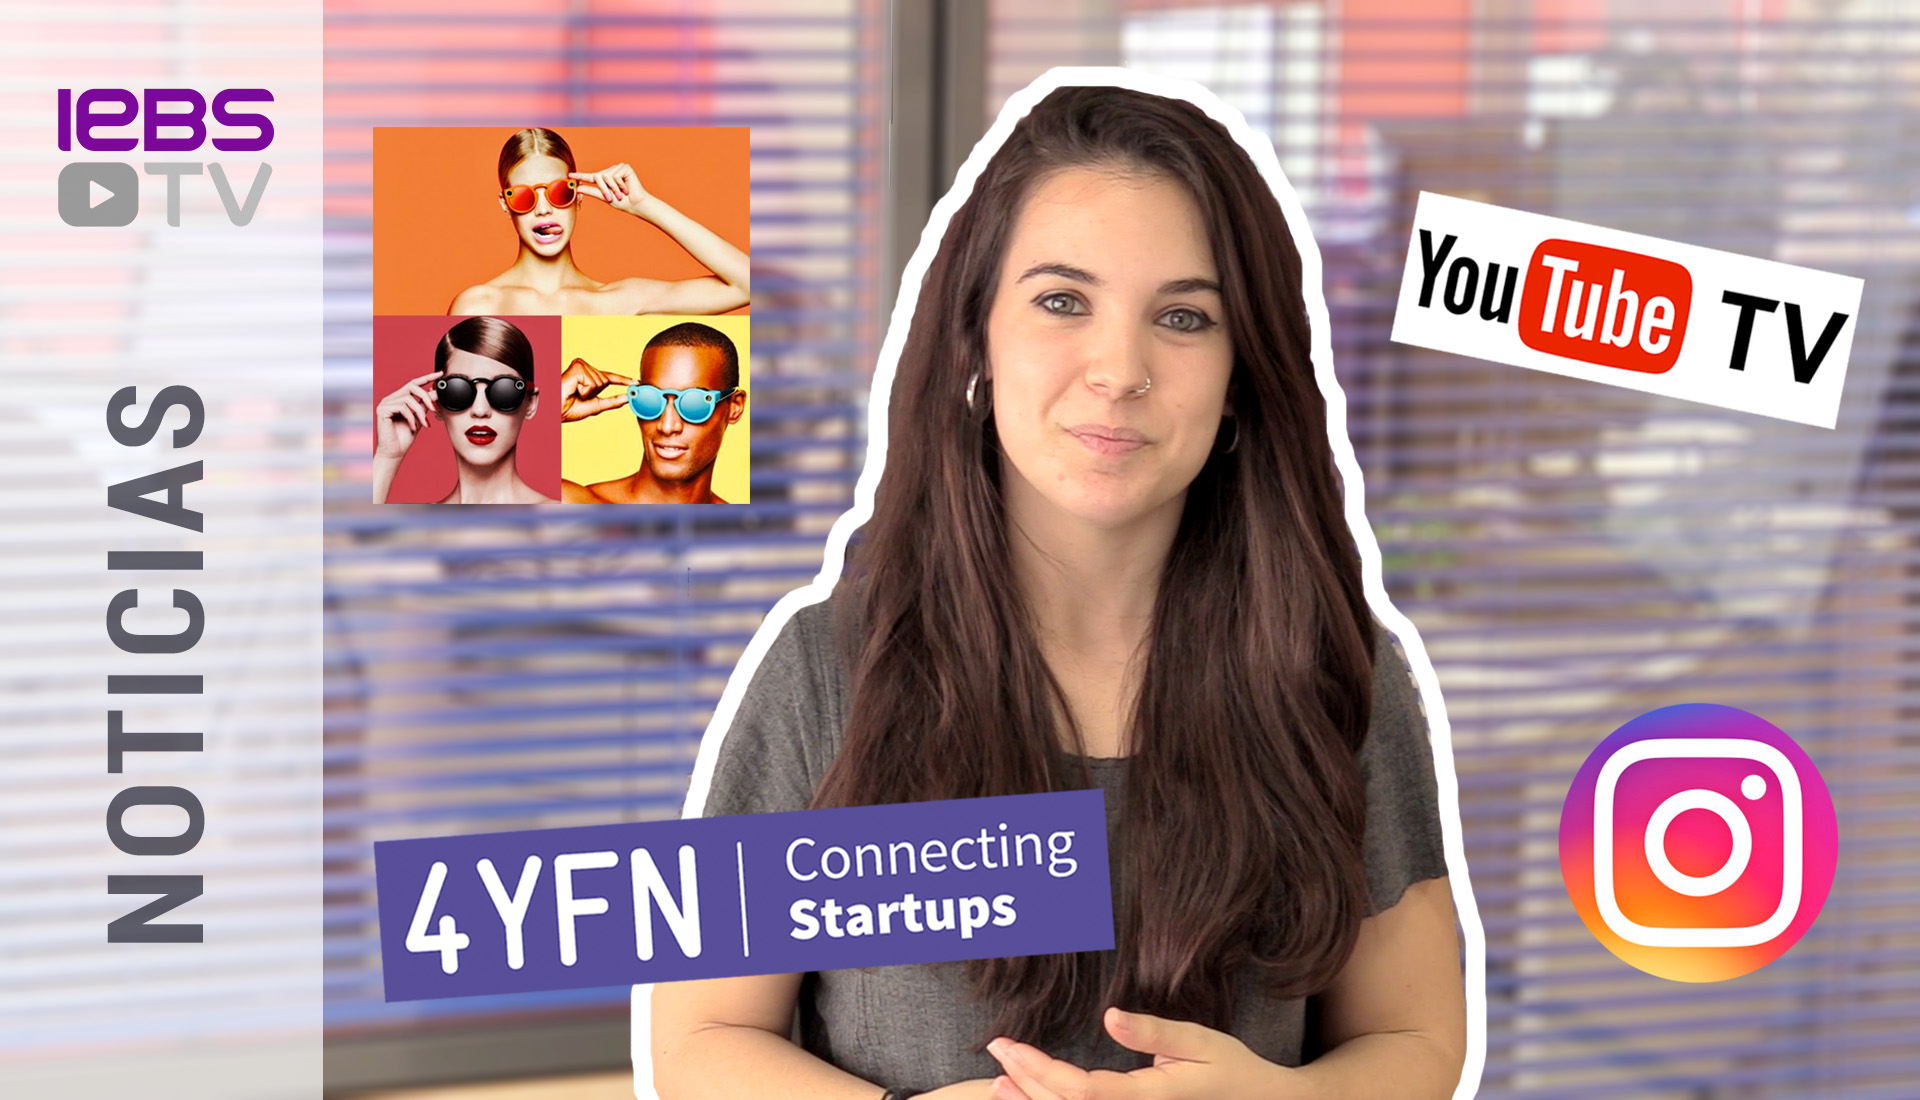 Spectacles Snapchat, Youtube TV y 4YFN